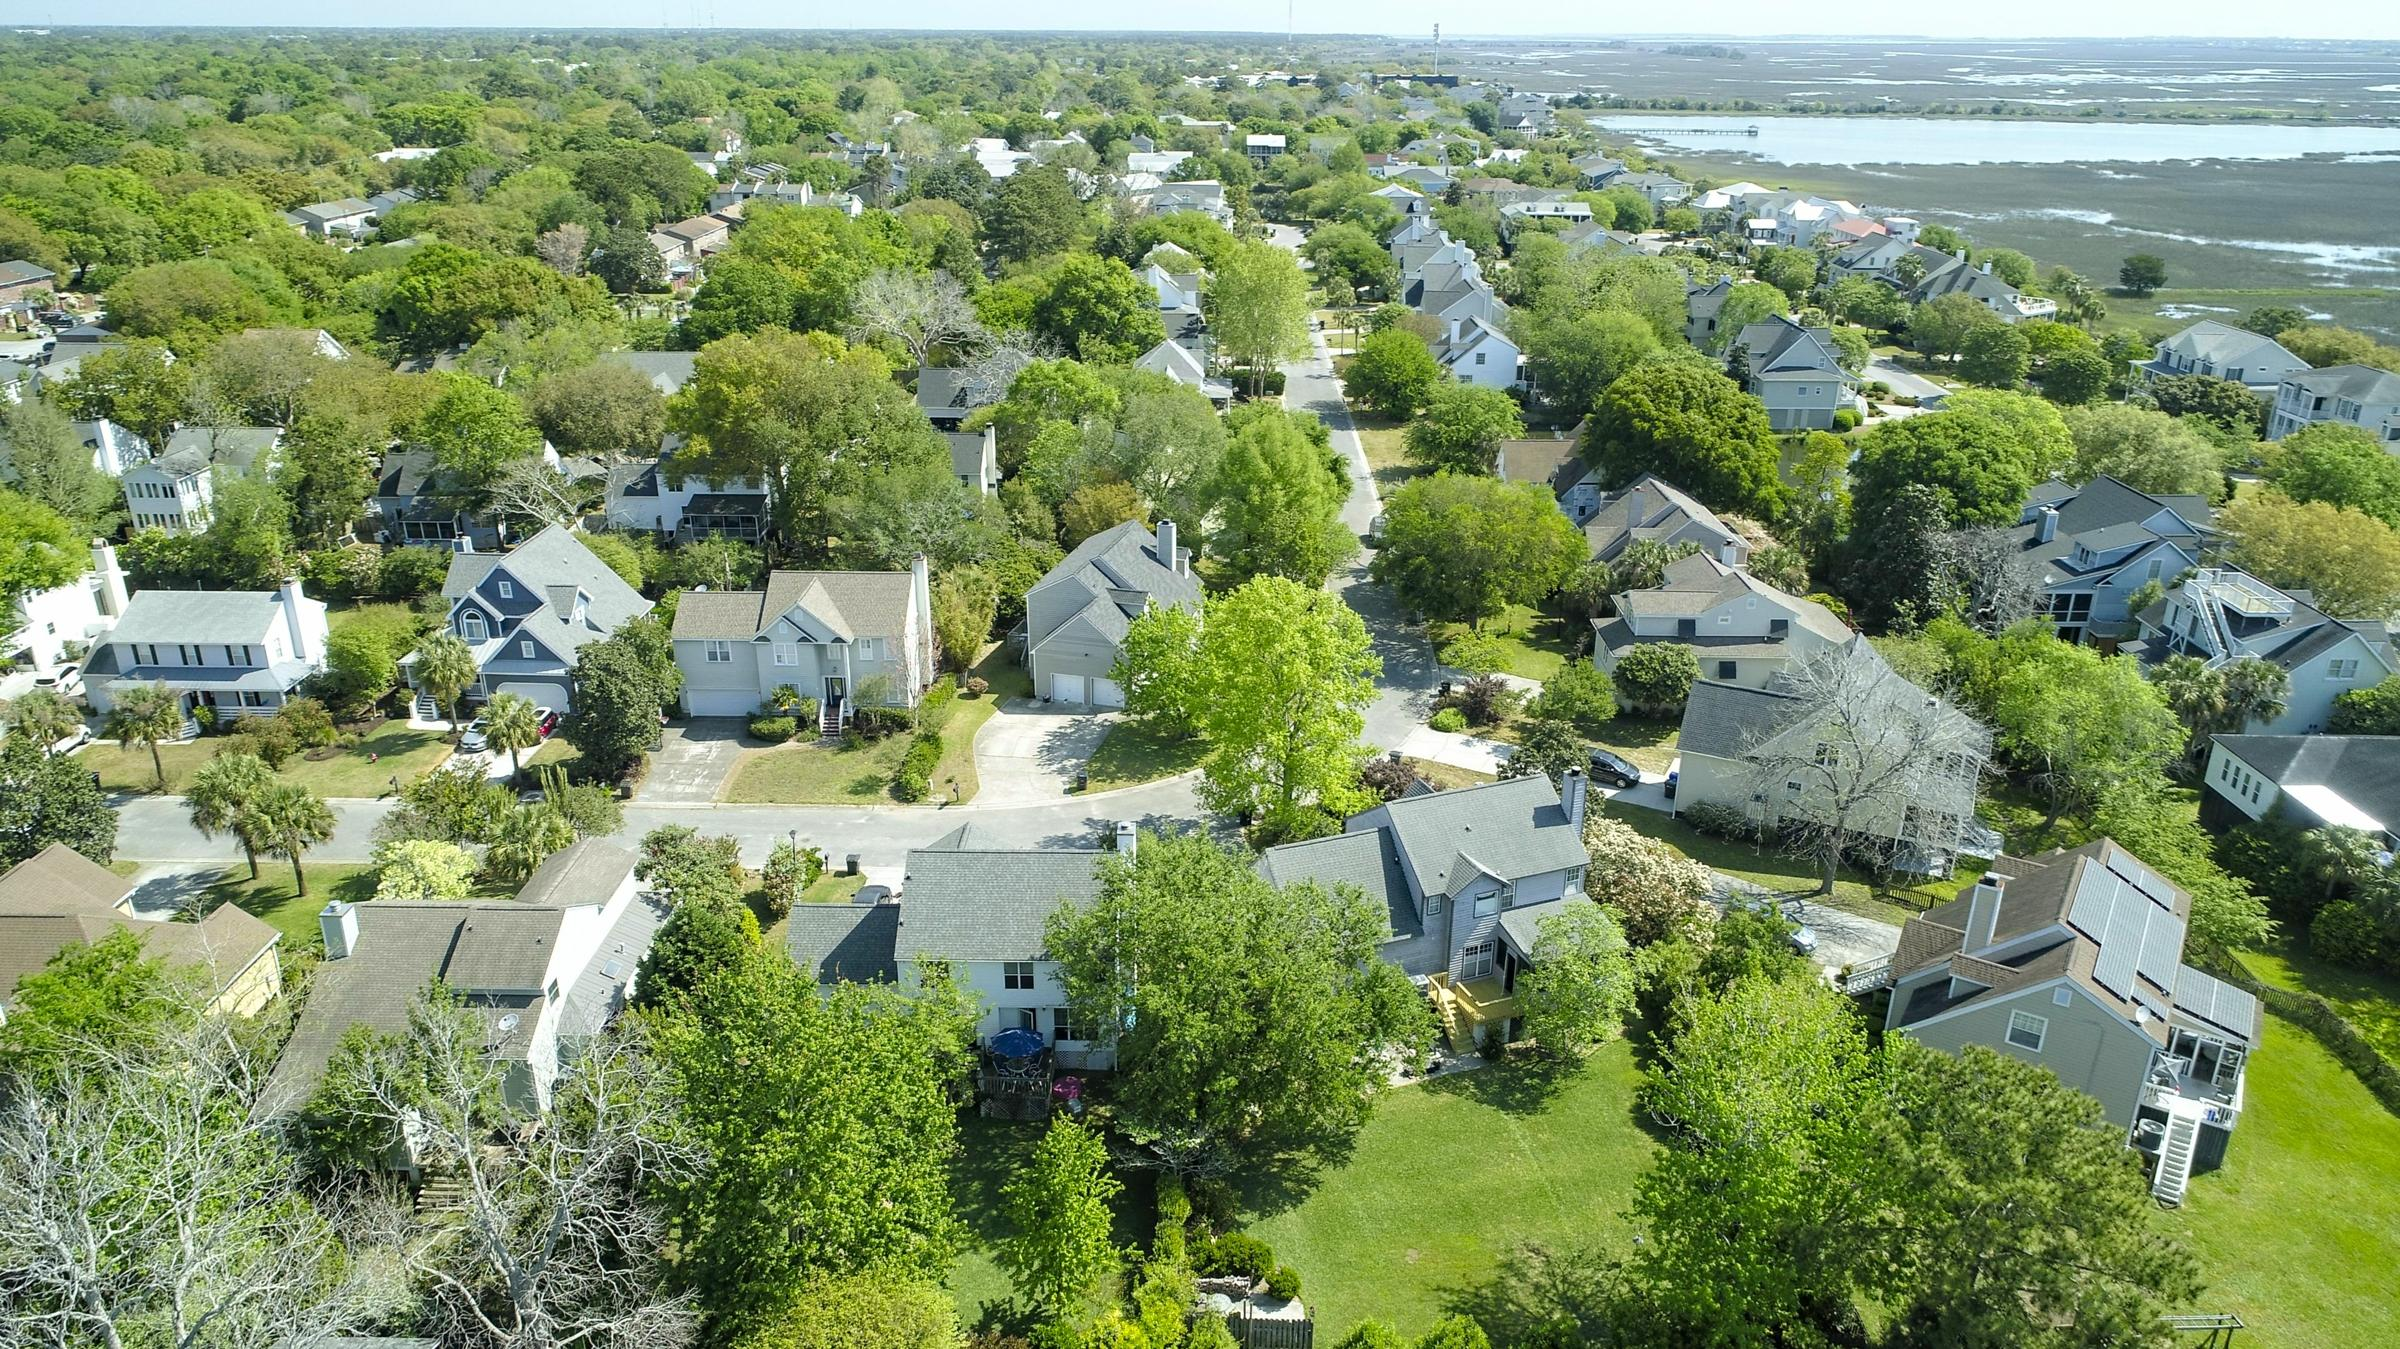 Pirates Cove Homes For Sale - 1528 Privateer, Mount Pleasant, SC - 2